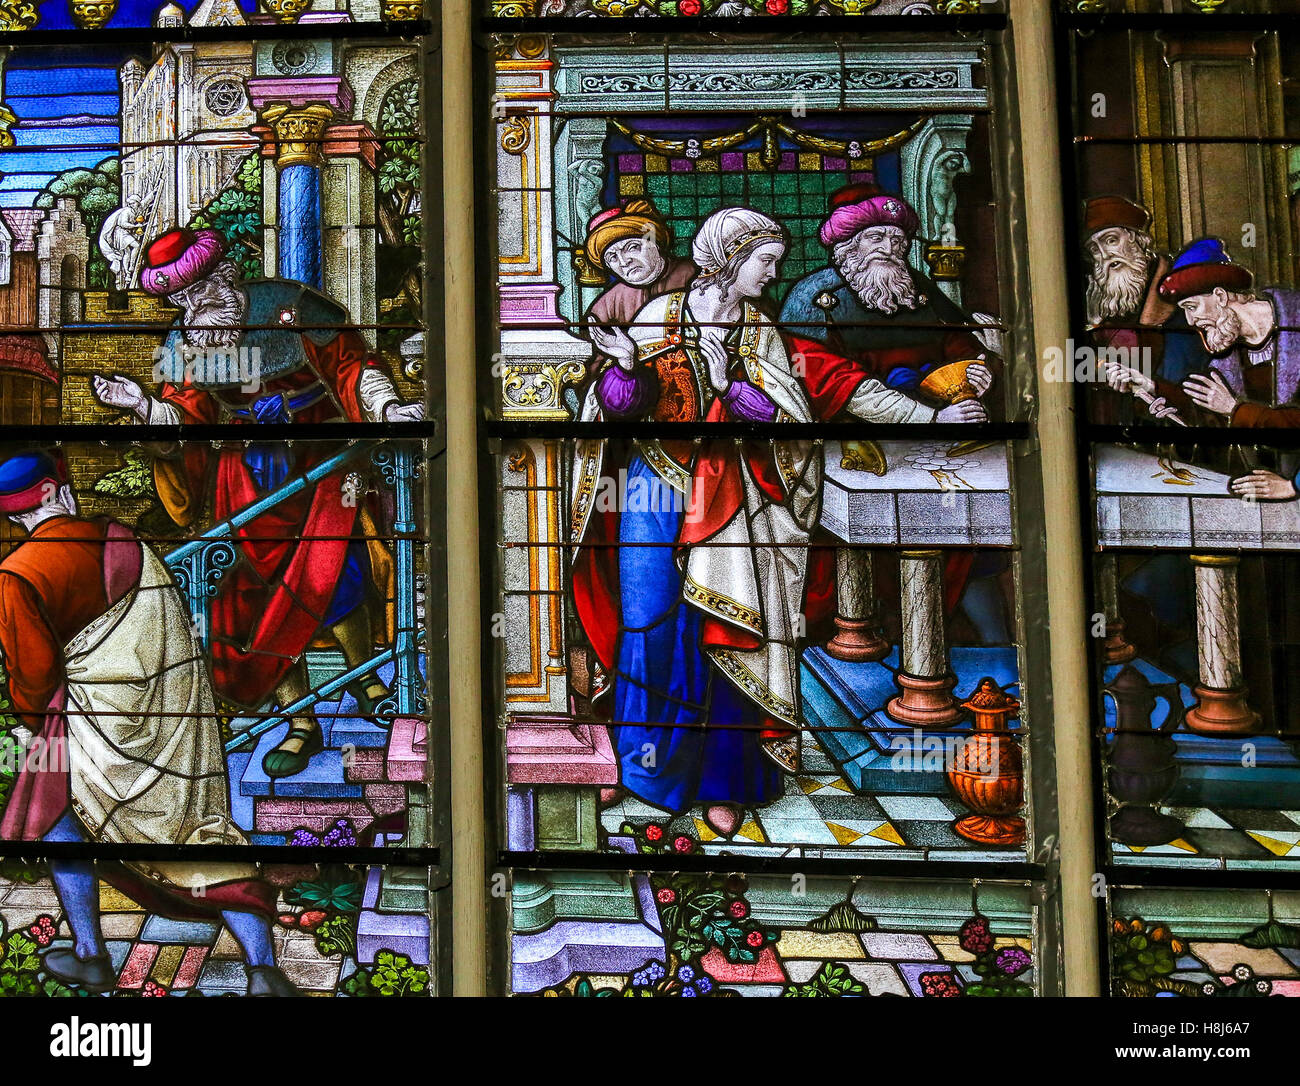 Stained Glass depicting the local legend of Jews stealing sacramental bread, in the Cathedral of Mechelen, Belgium. - Stock Image